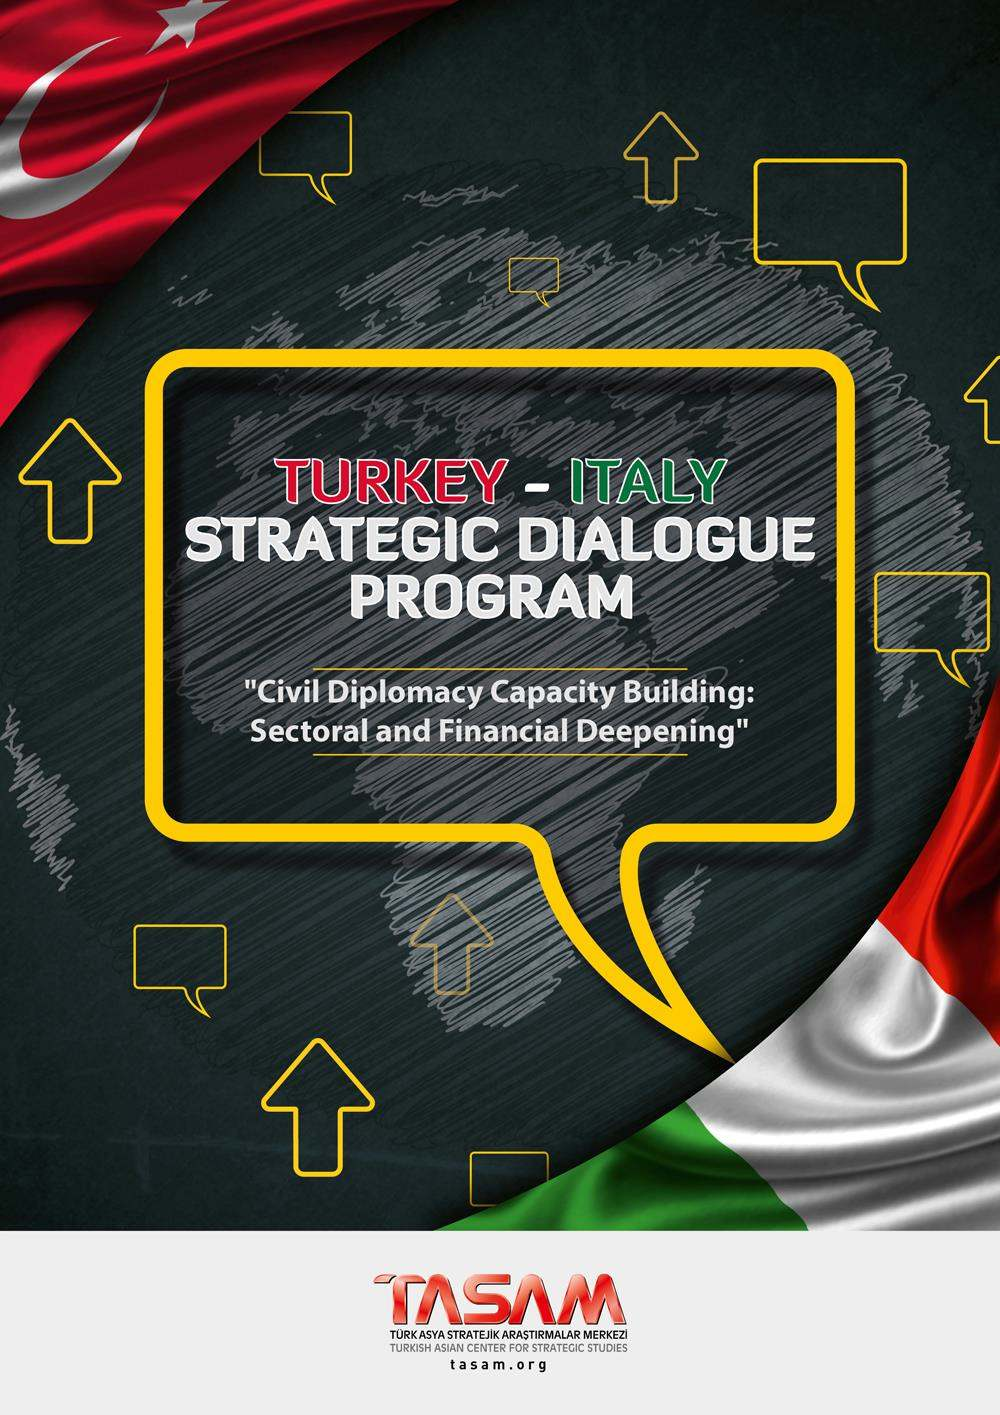 Turkey - Italy Strategic Dialogue Program